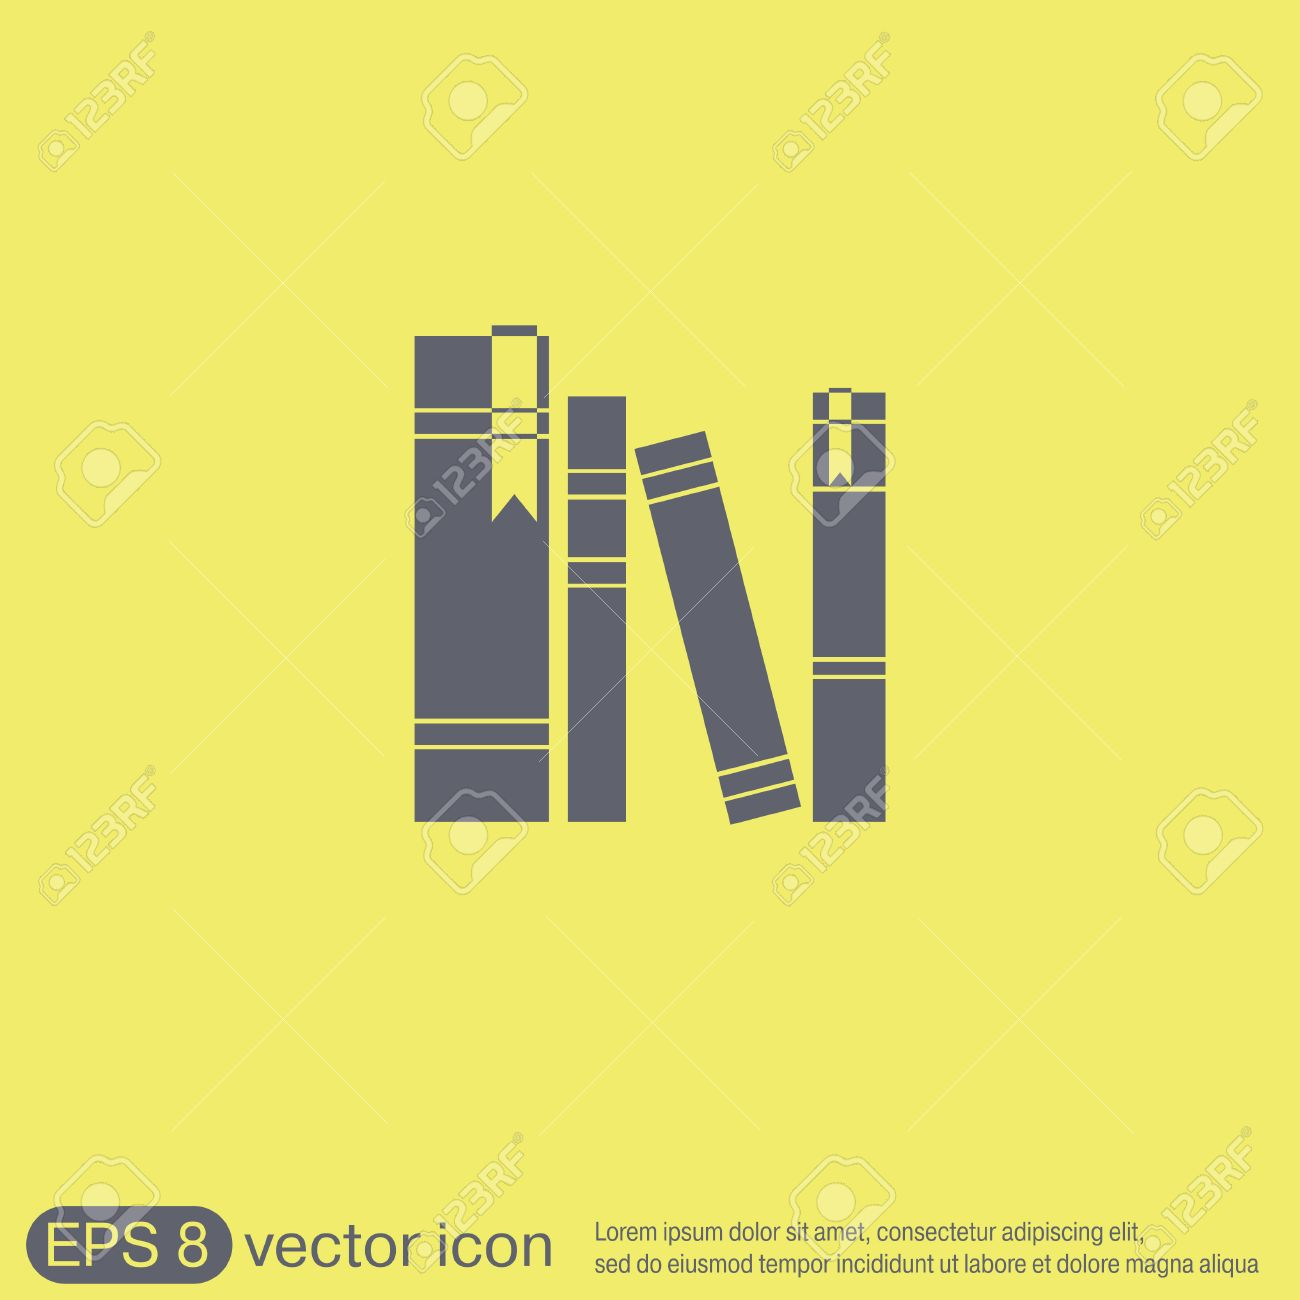 Symbol in literature book spine spines of books icon symbol of a book spine spines of books icon symbol of a science and vector book spine spines of biocorpaavc Gallery